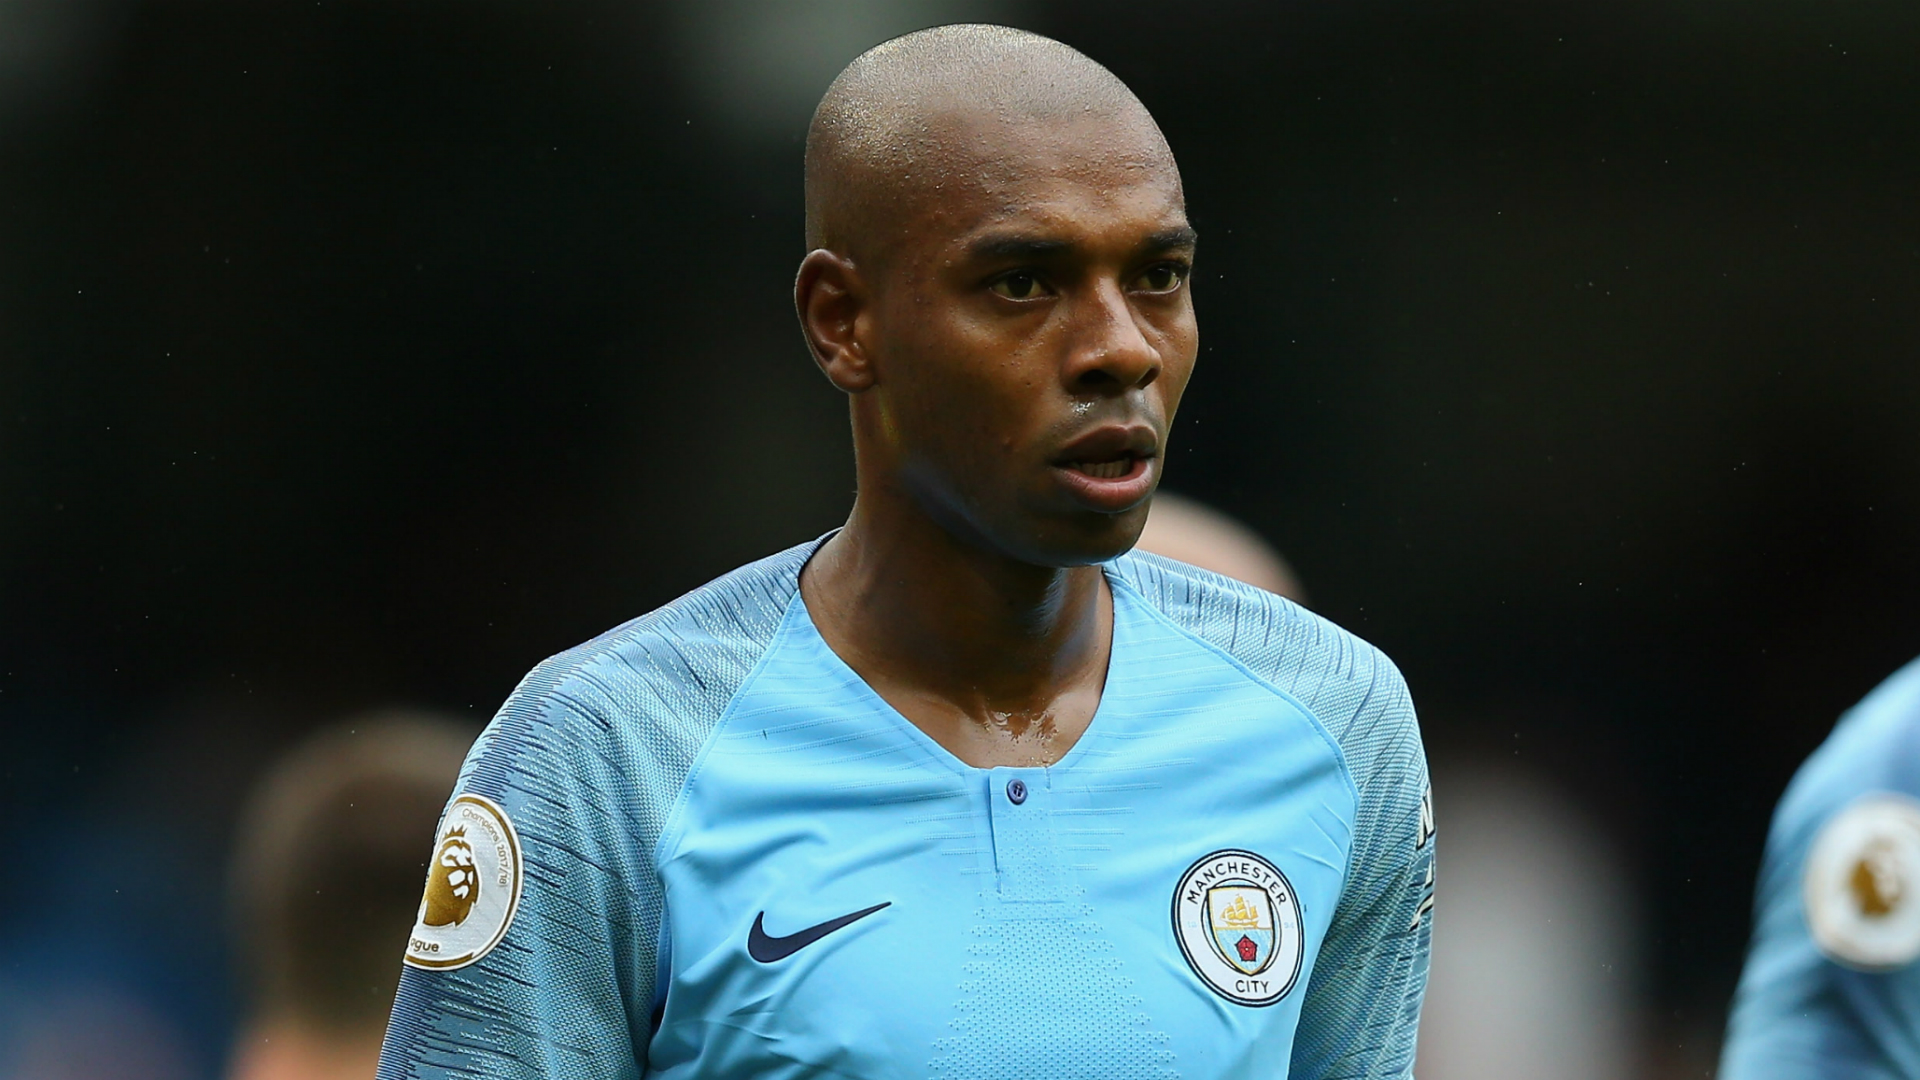 Fernandinho absent for Manchester City trip to Crystal Palace due to injury